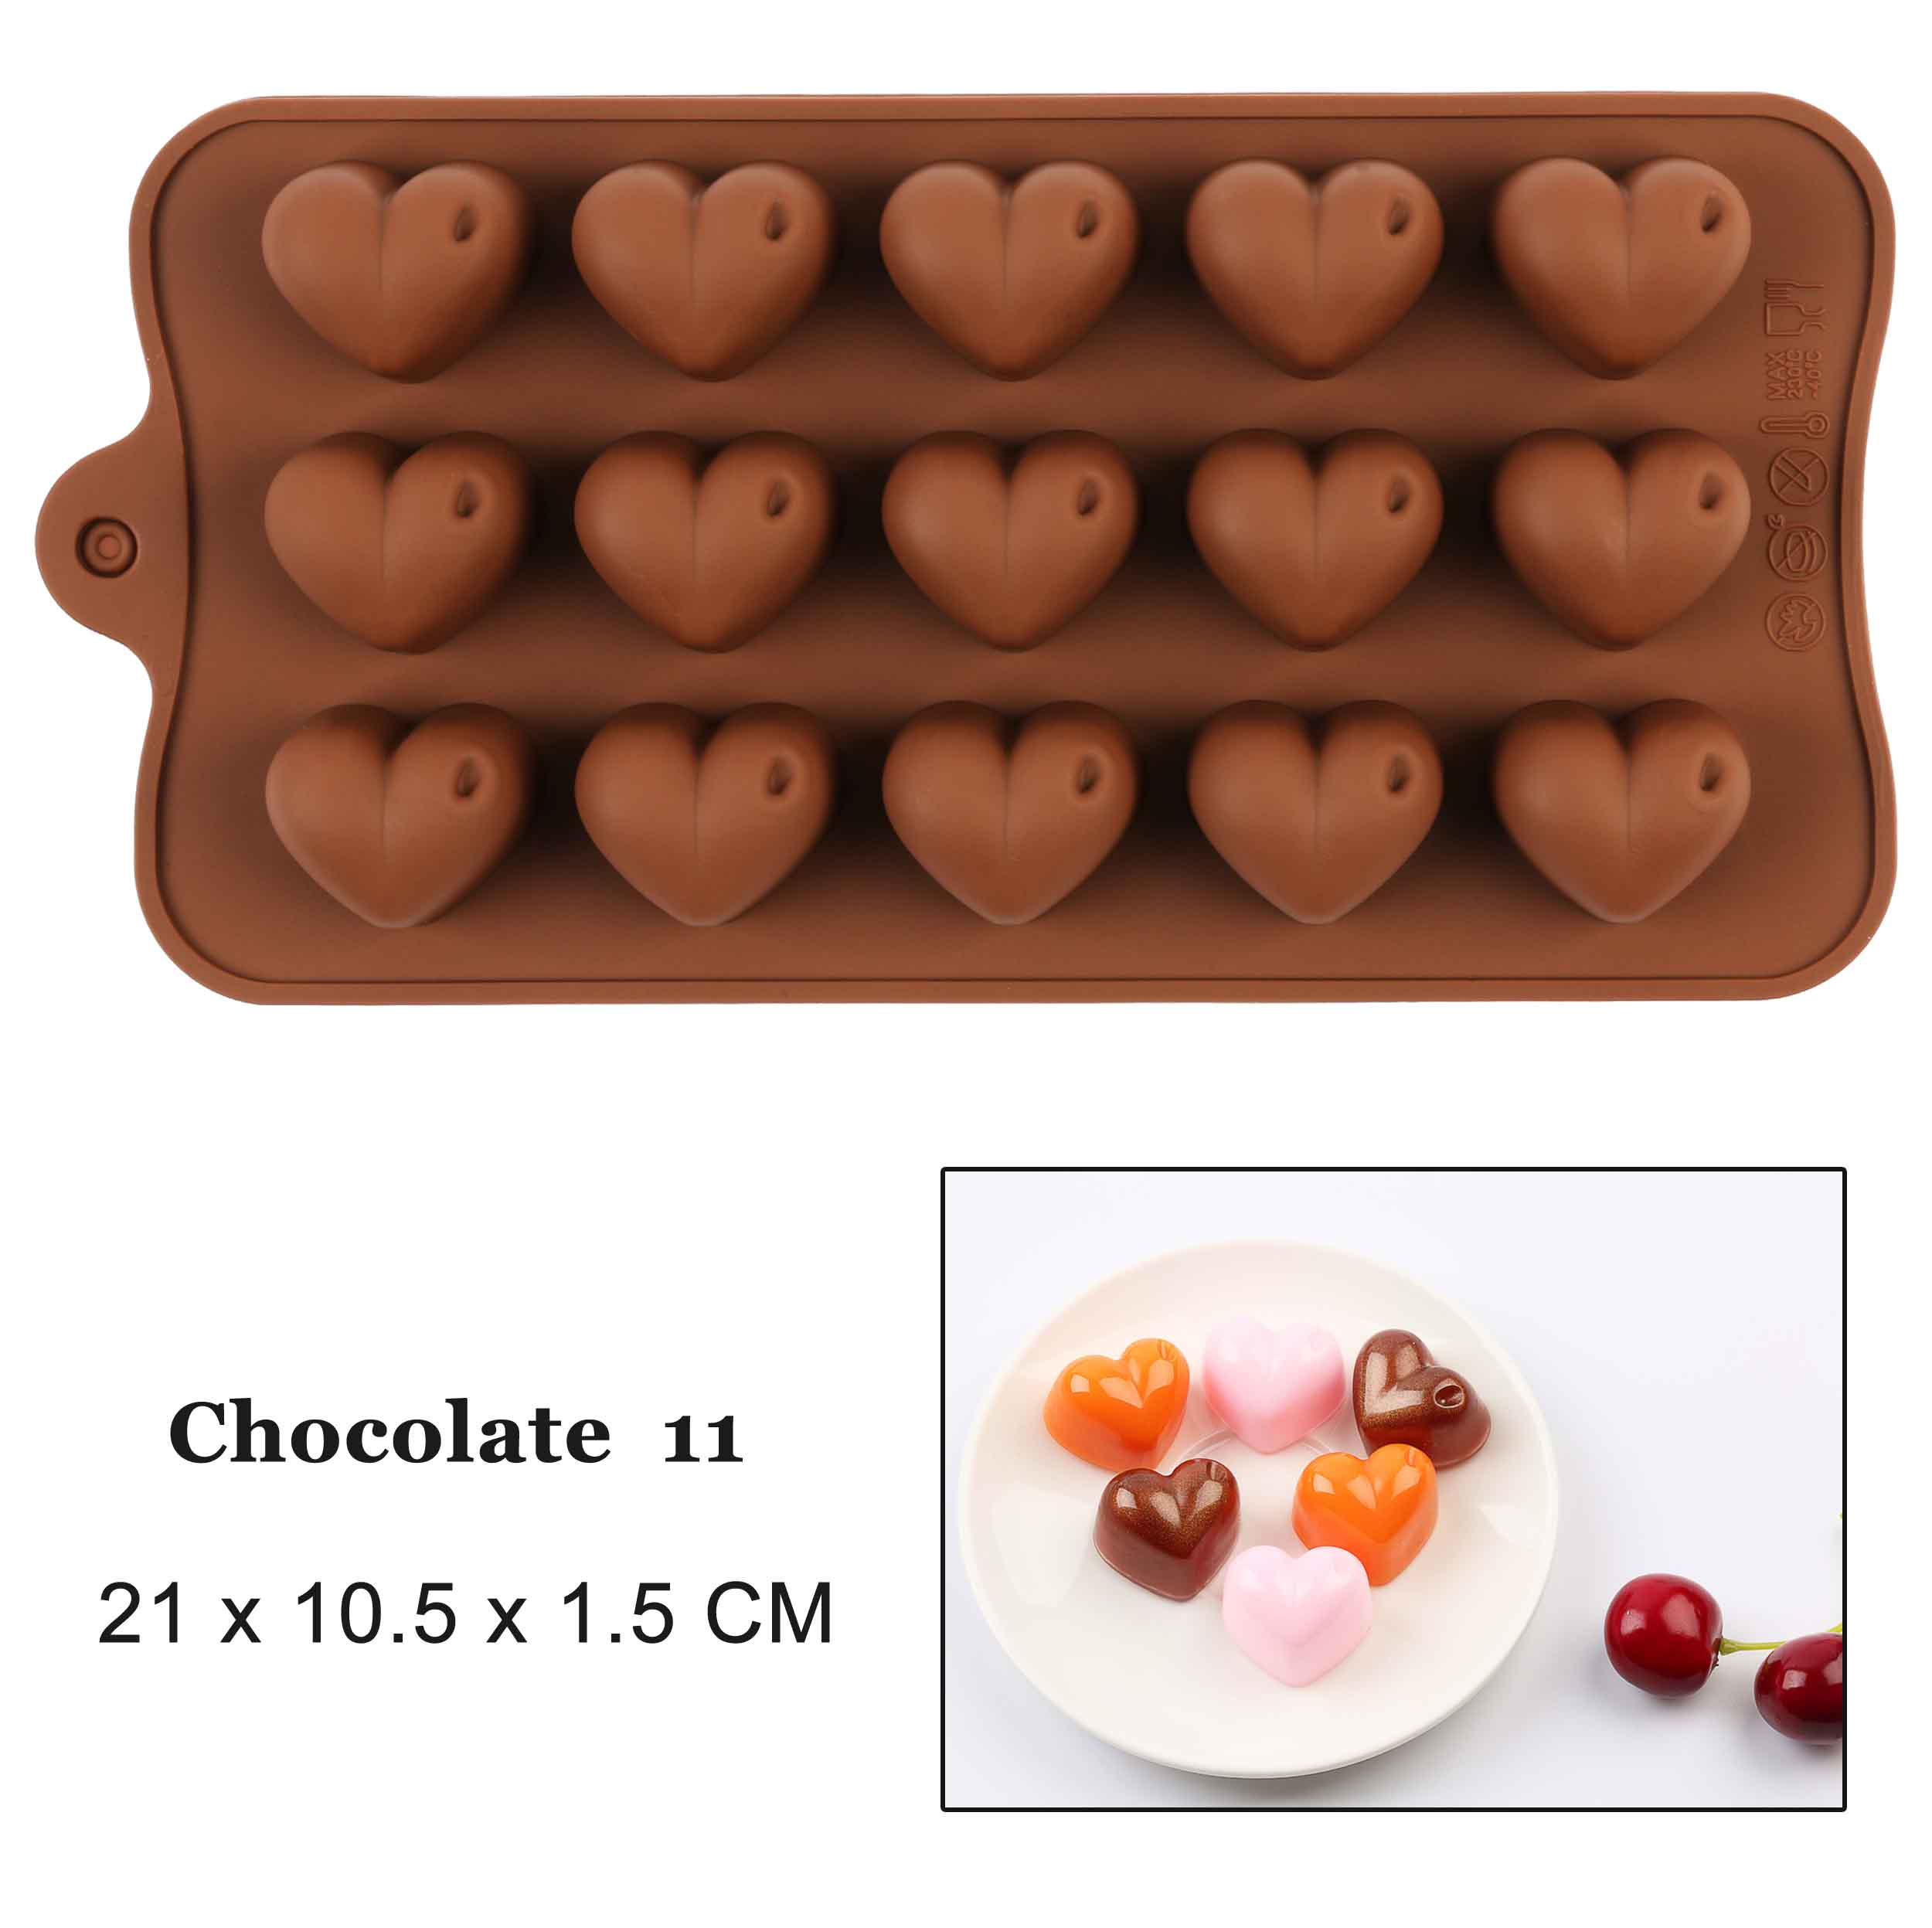 New Silicone Chocolate Mold 29 Shapes Chocolate Baking Tools Non-stick Silicone Cake Mold Jelly And Candy Mold 3D Mold DIY Best